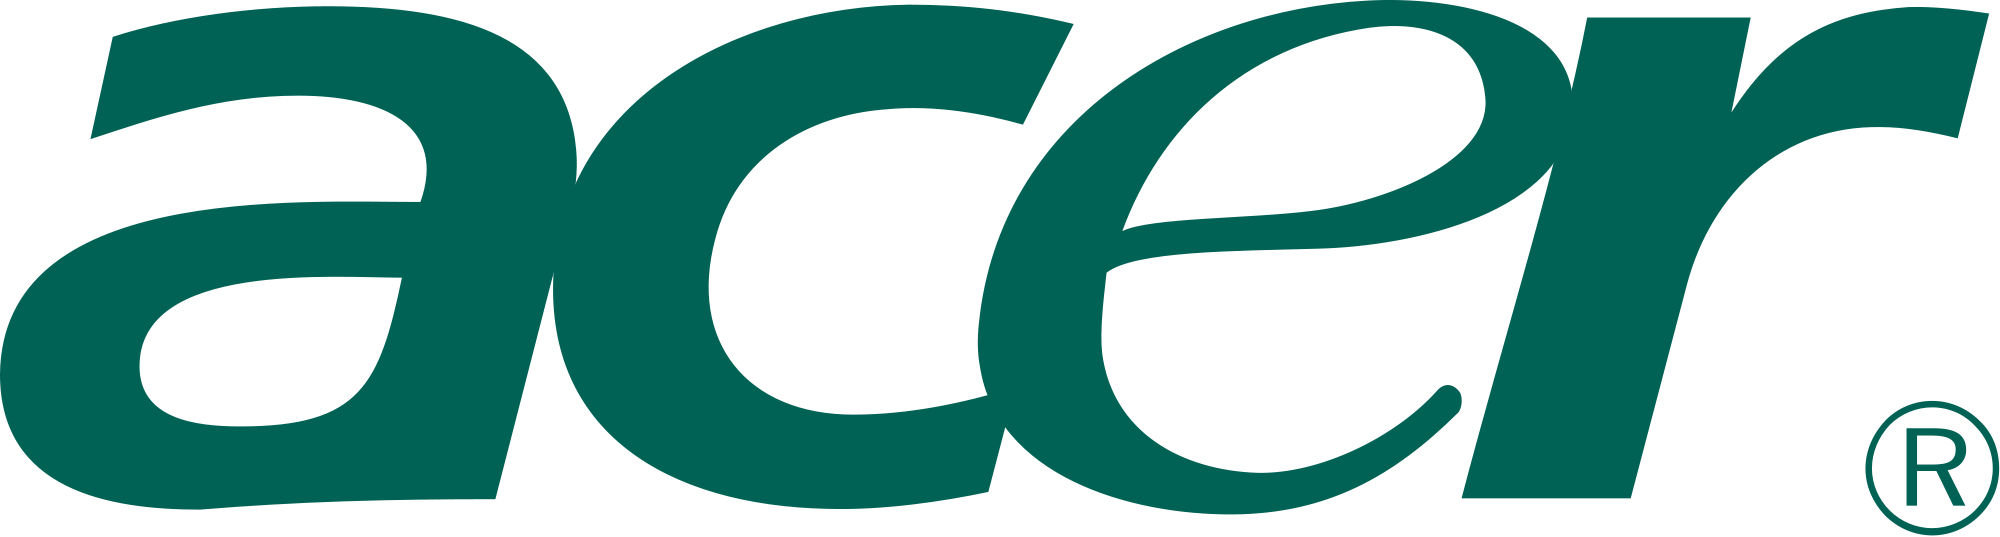 Image - Acer Logo.png - Logopedia, the logo and branding site